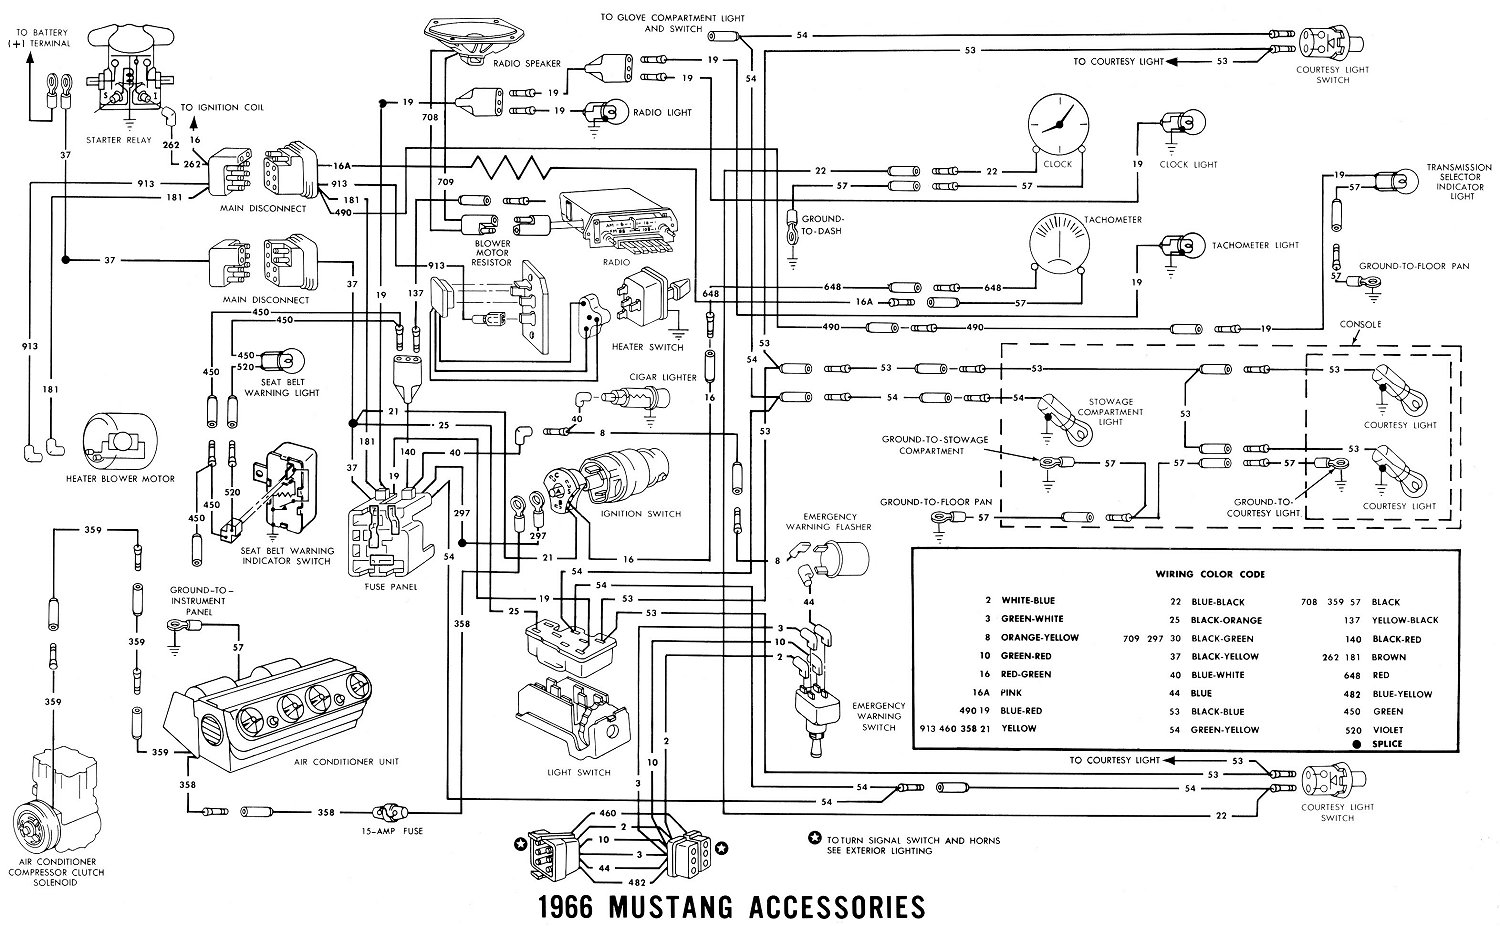 1966 Ford Mustang Accessories Wiring Diagram 2010 ford mustang wiring diagram lights wiring diagram simonand 2007 ford escape wiring diagram at crackthecode.co